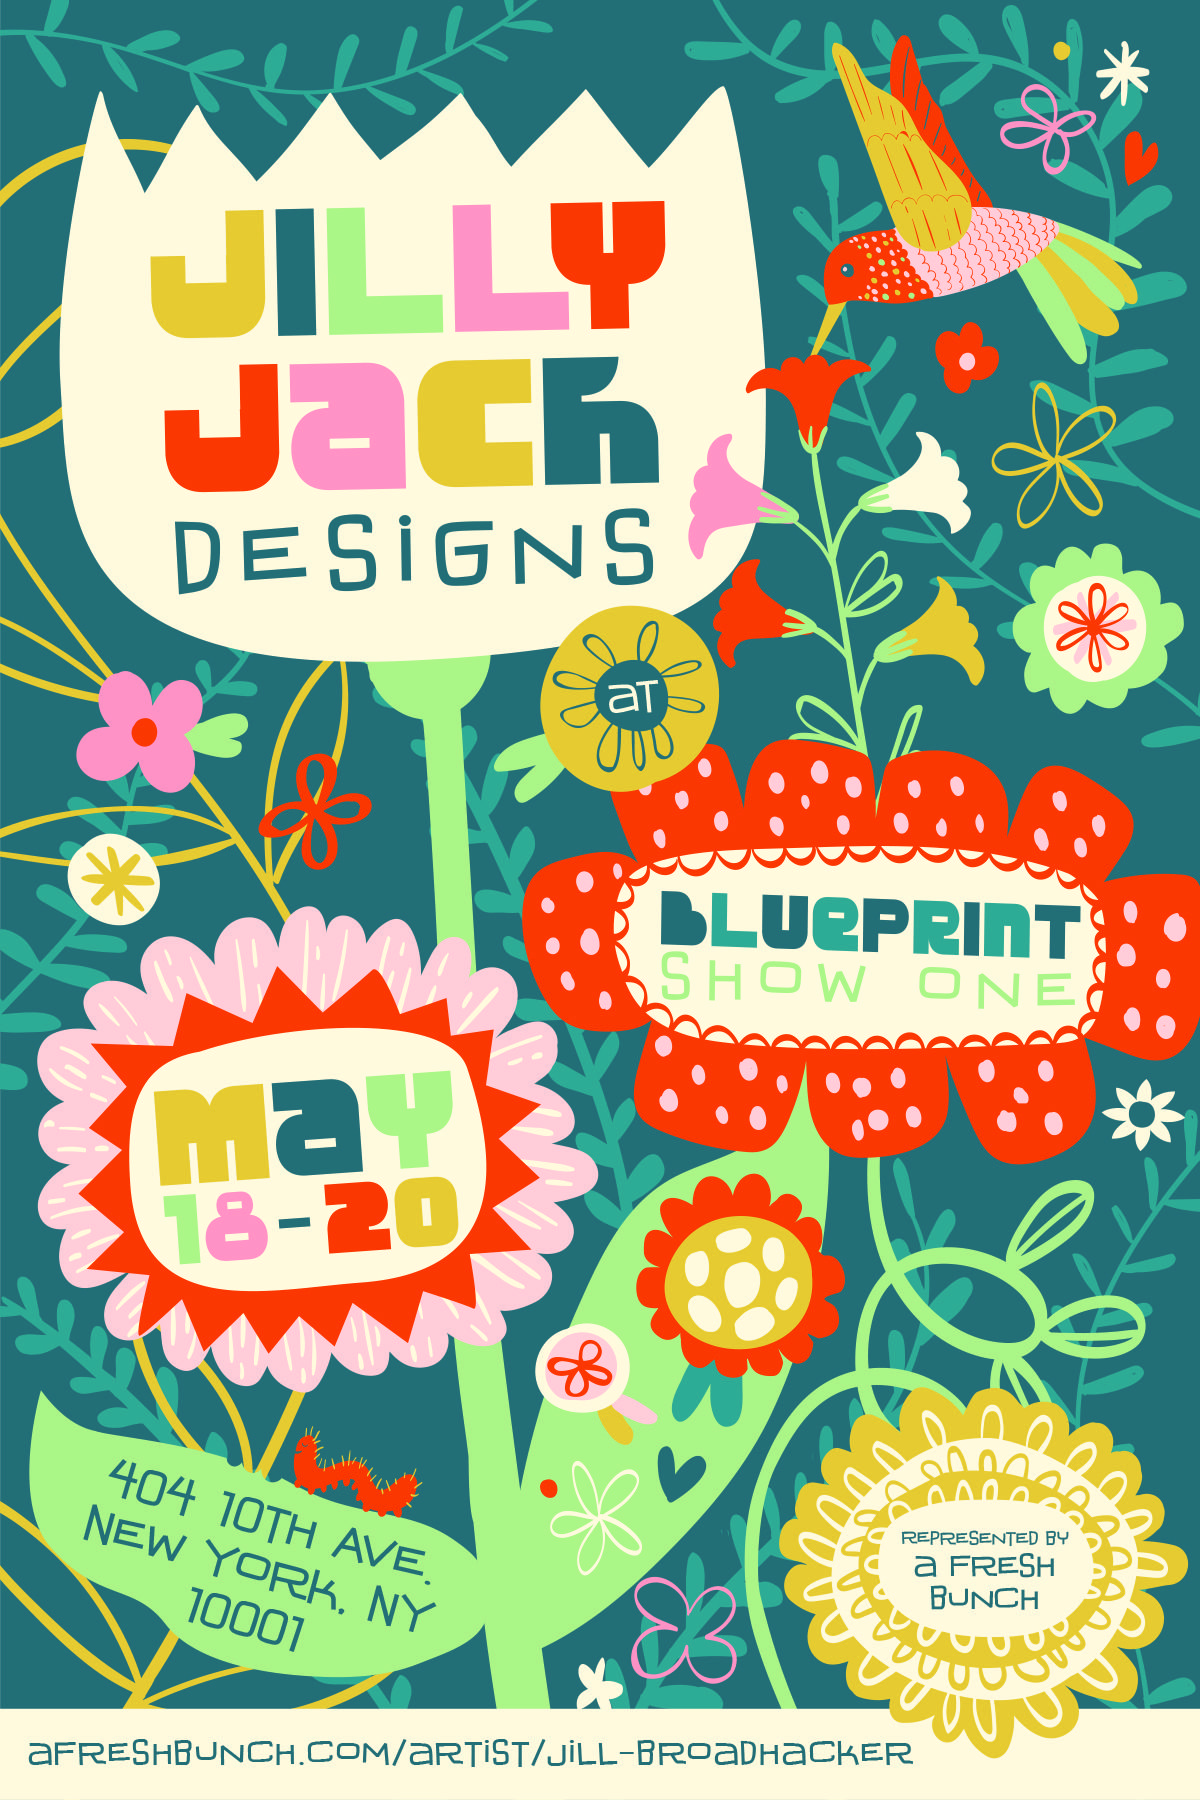 Whimsical floral illustration by jill broadhacker of jilly jack whimsical floral illustration by jill broadhacker of jilly jack designs represented by a fresh bunch promo malvernweather Gallery